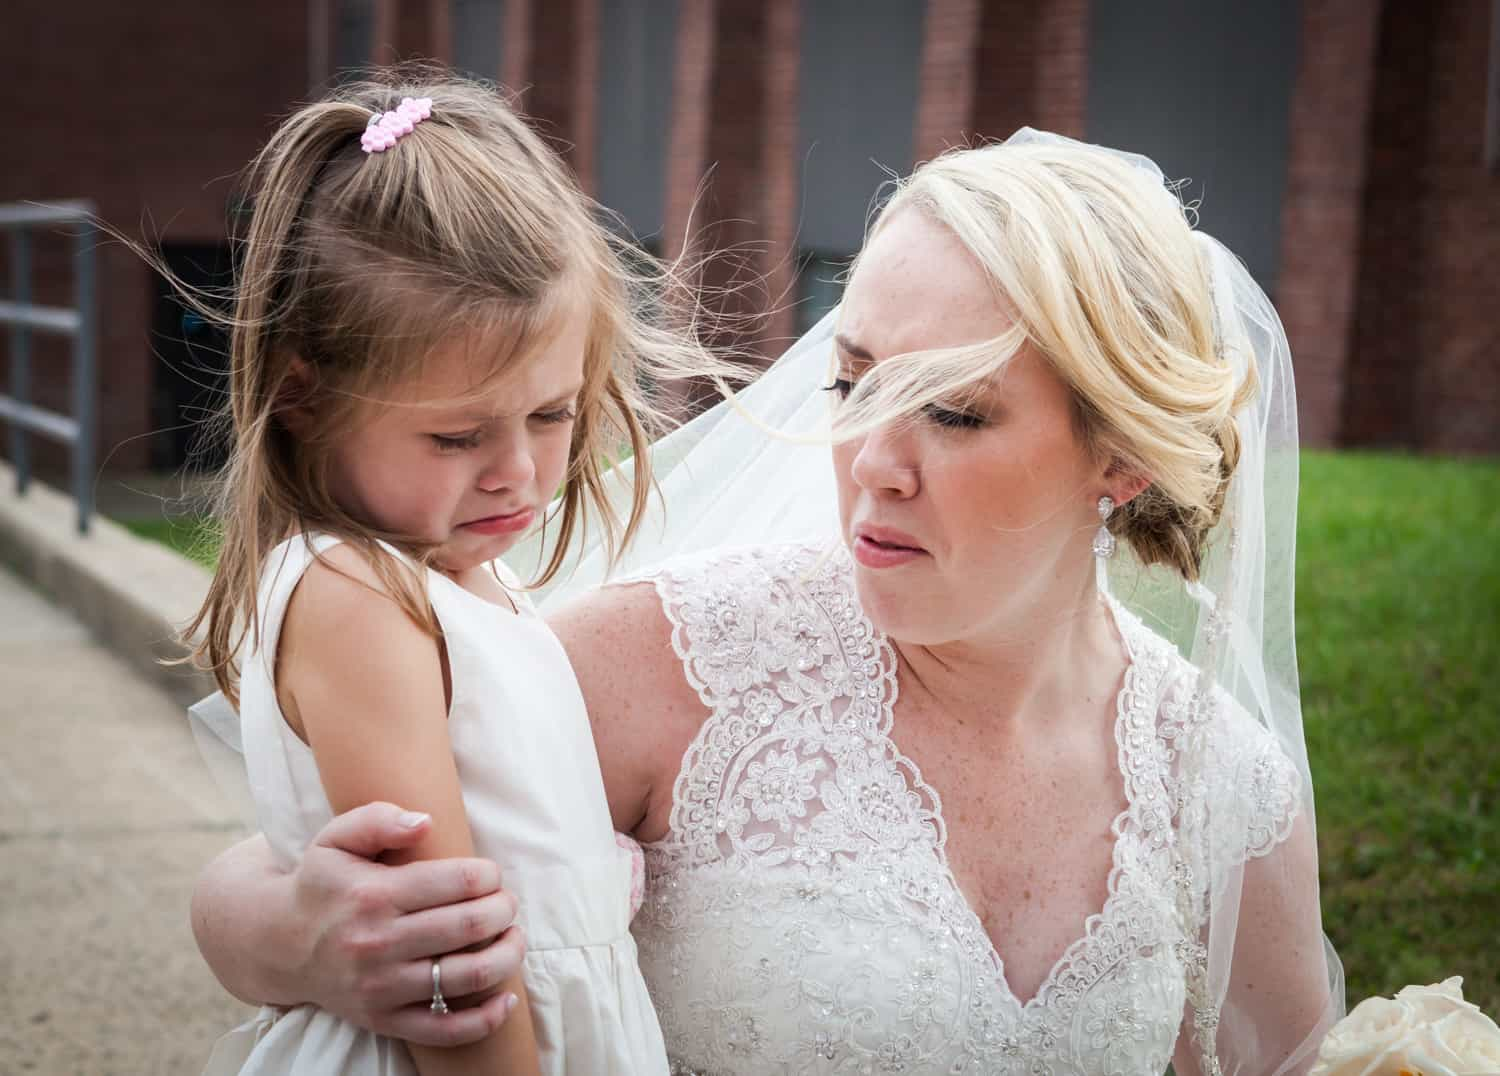 Bride consoling crying little girl after wedding ceremony